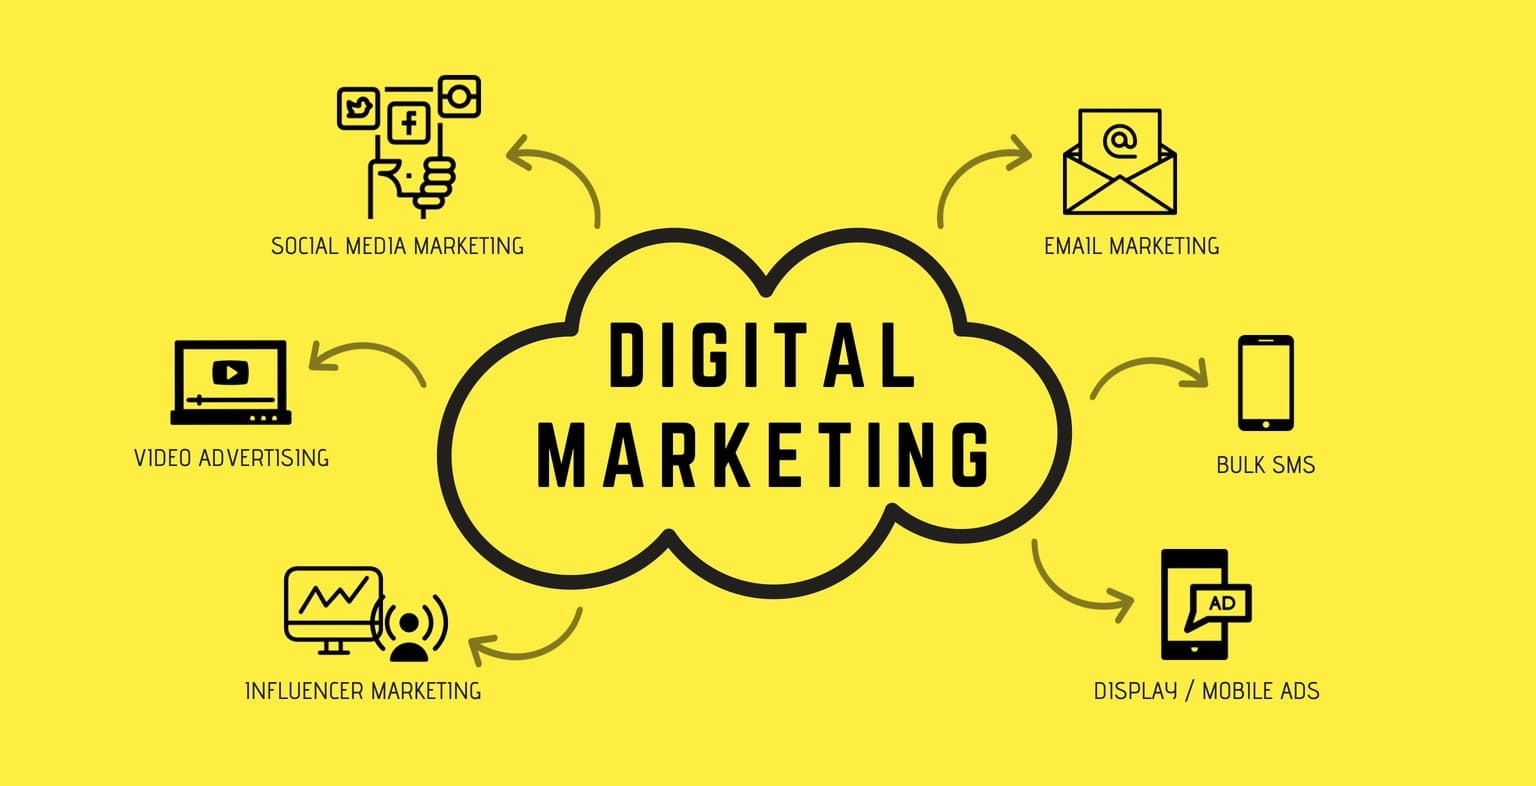 Why Do Businesses Need Digital Marketing Services?